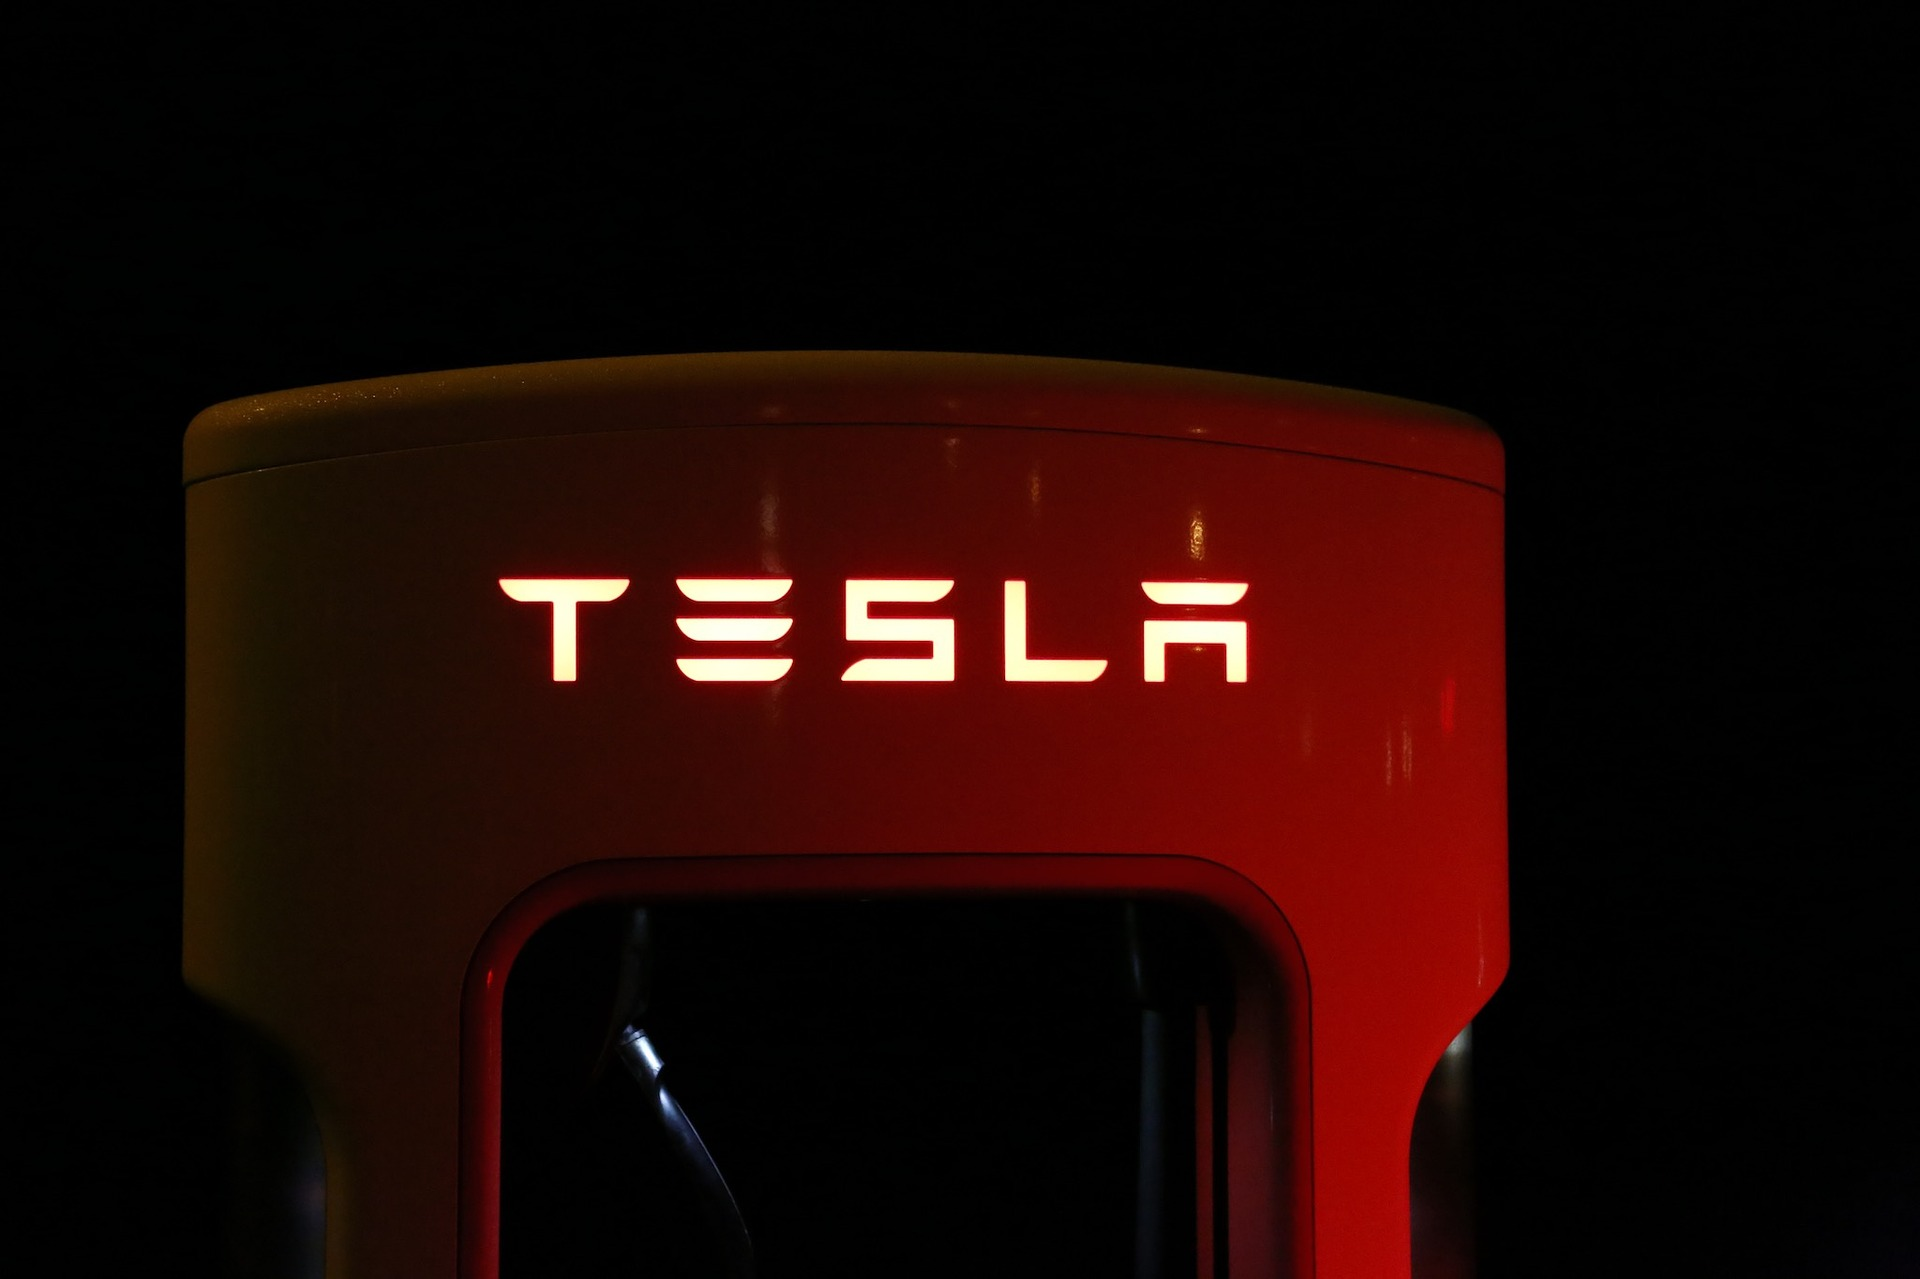 Tesla shares - what is going on